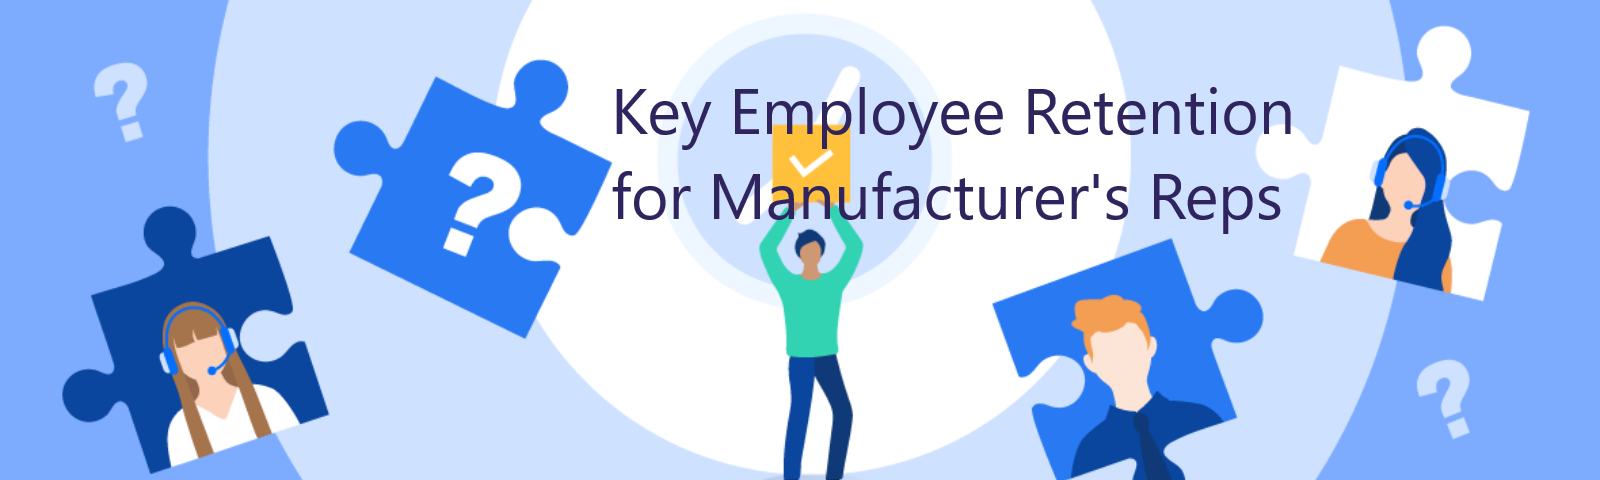 Key Employee Retention for Manufacturers Reps (recording posted soon)